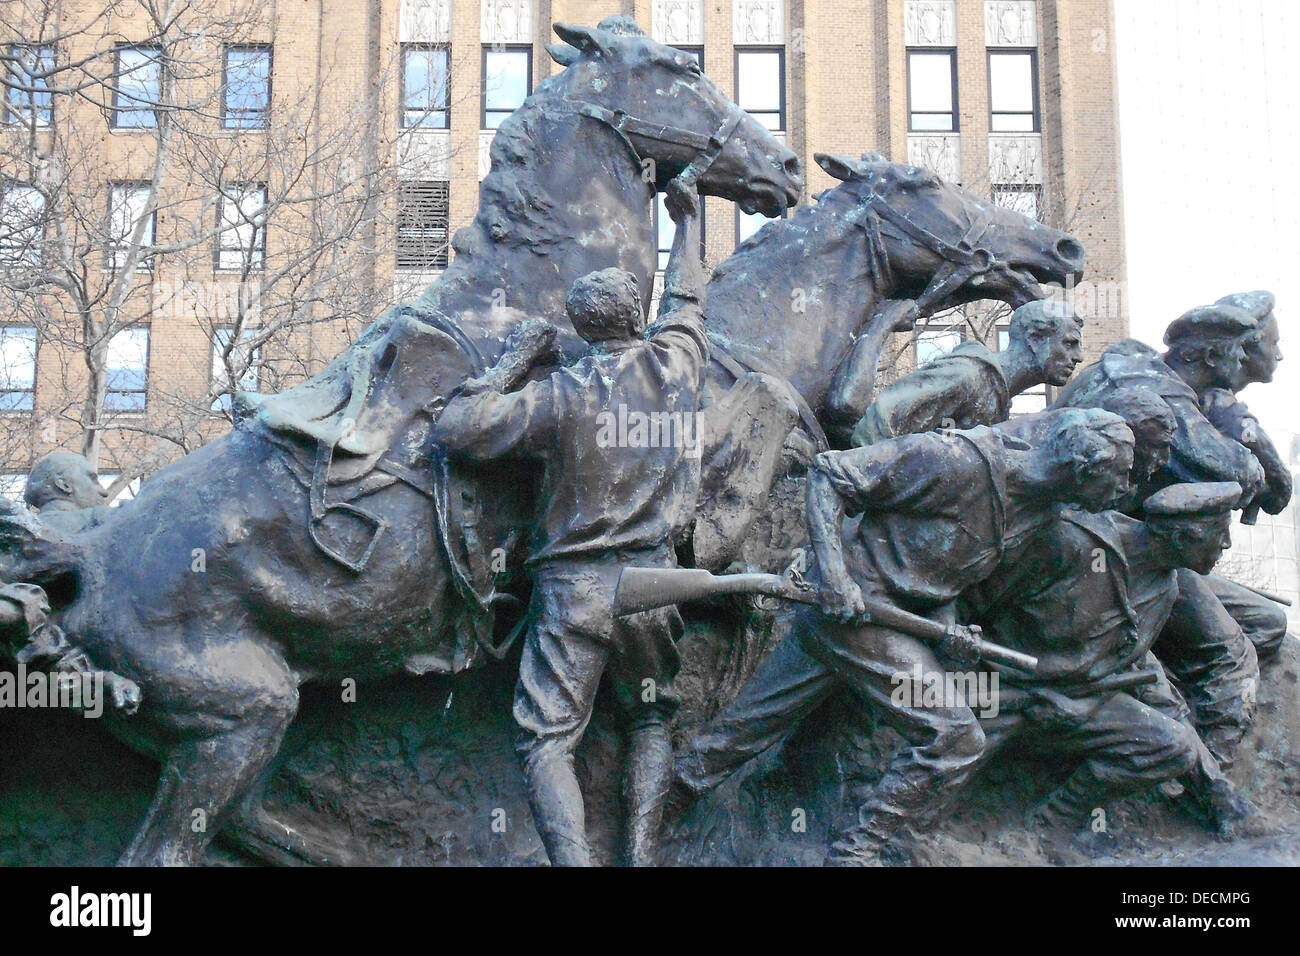 statue 'Wars of America' by Gutzon Borglum in Military Park, Newark, New Jersey - Stock Image